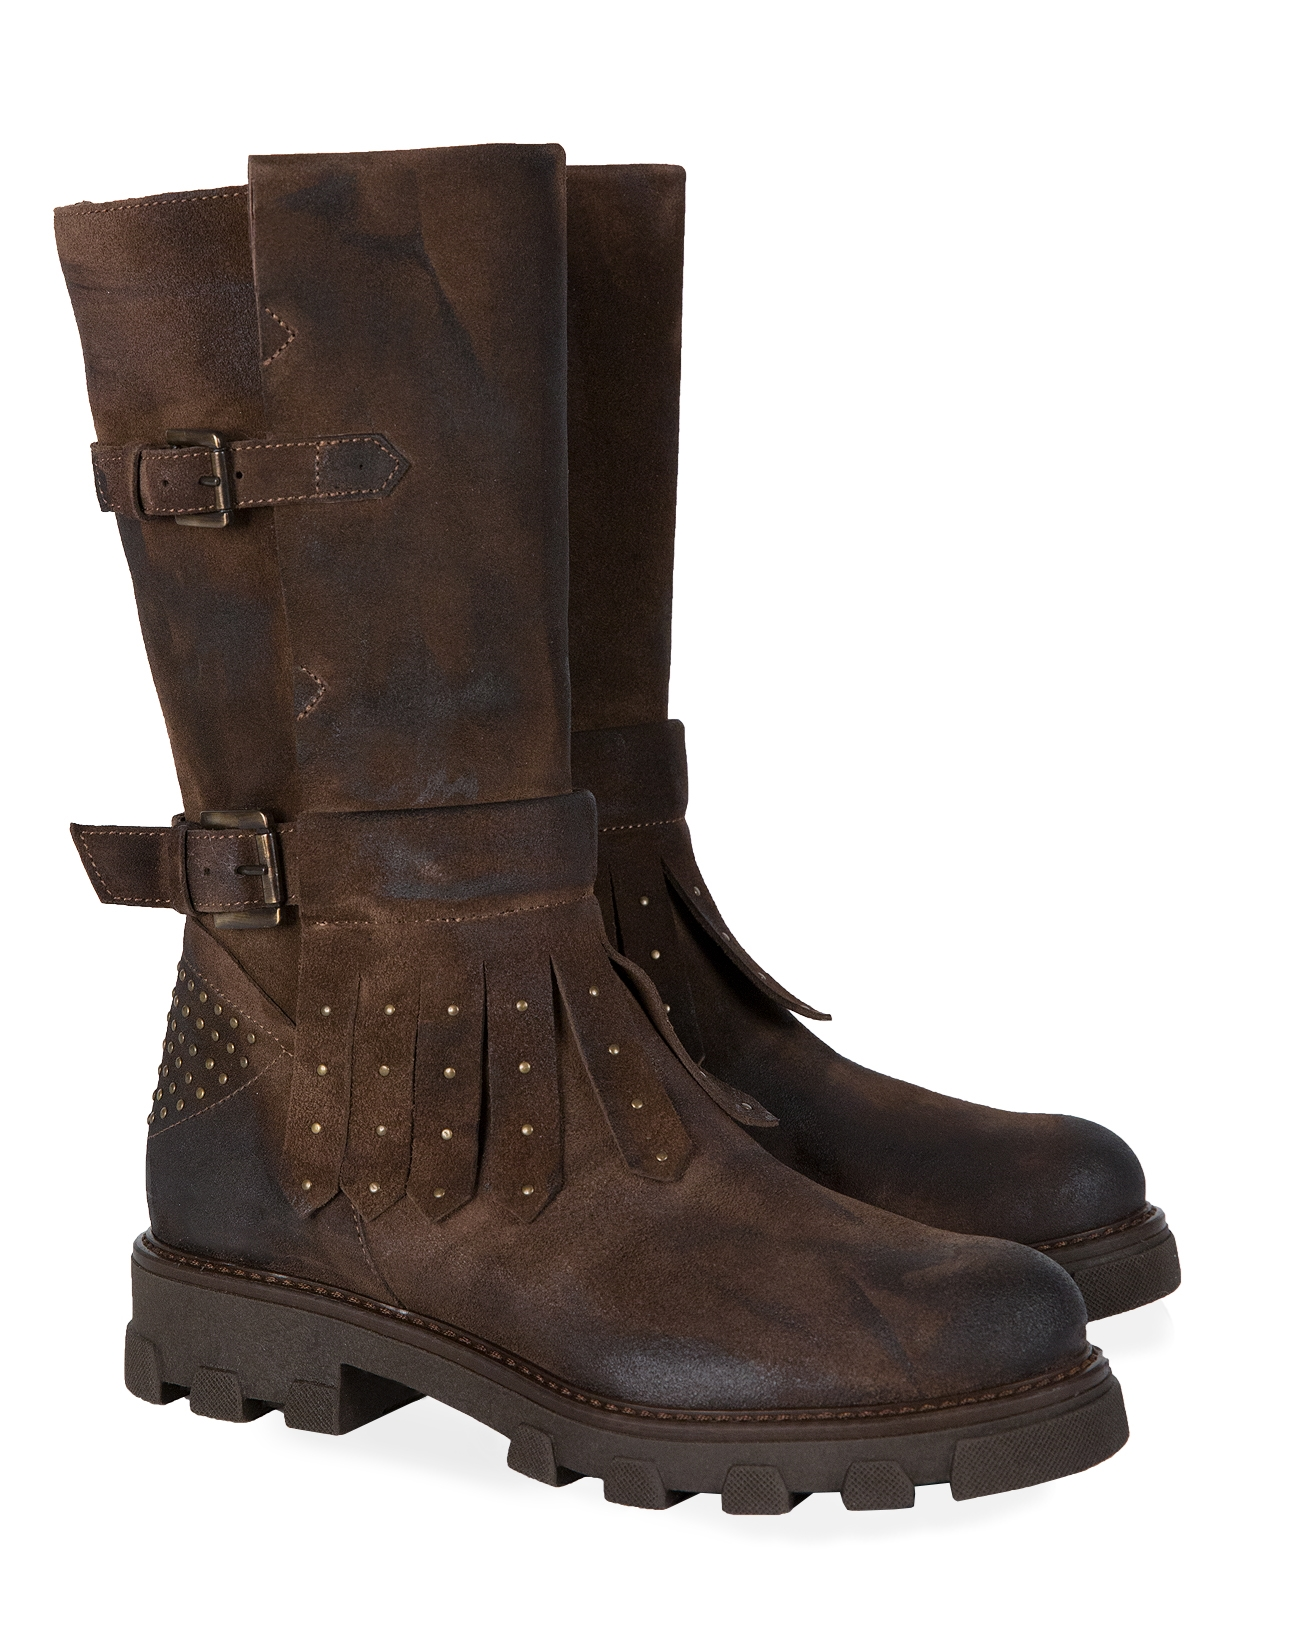 7415 warrior boots_pair_aw17.jpg